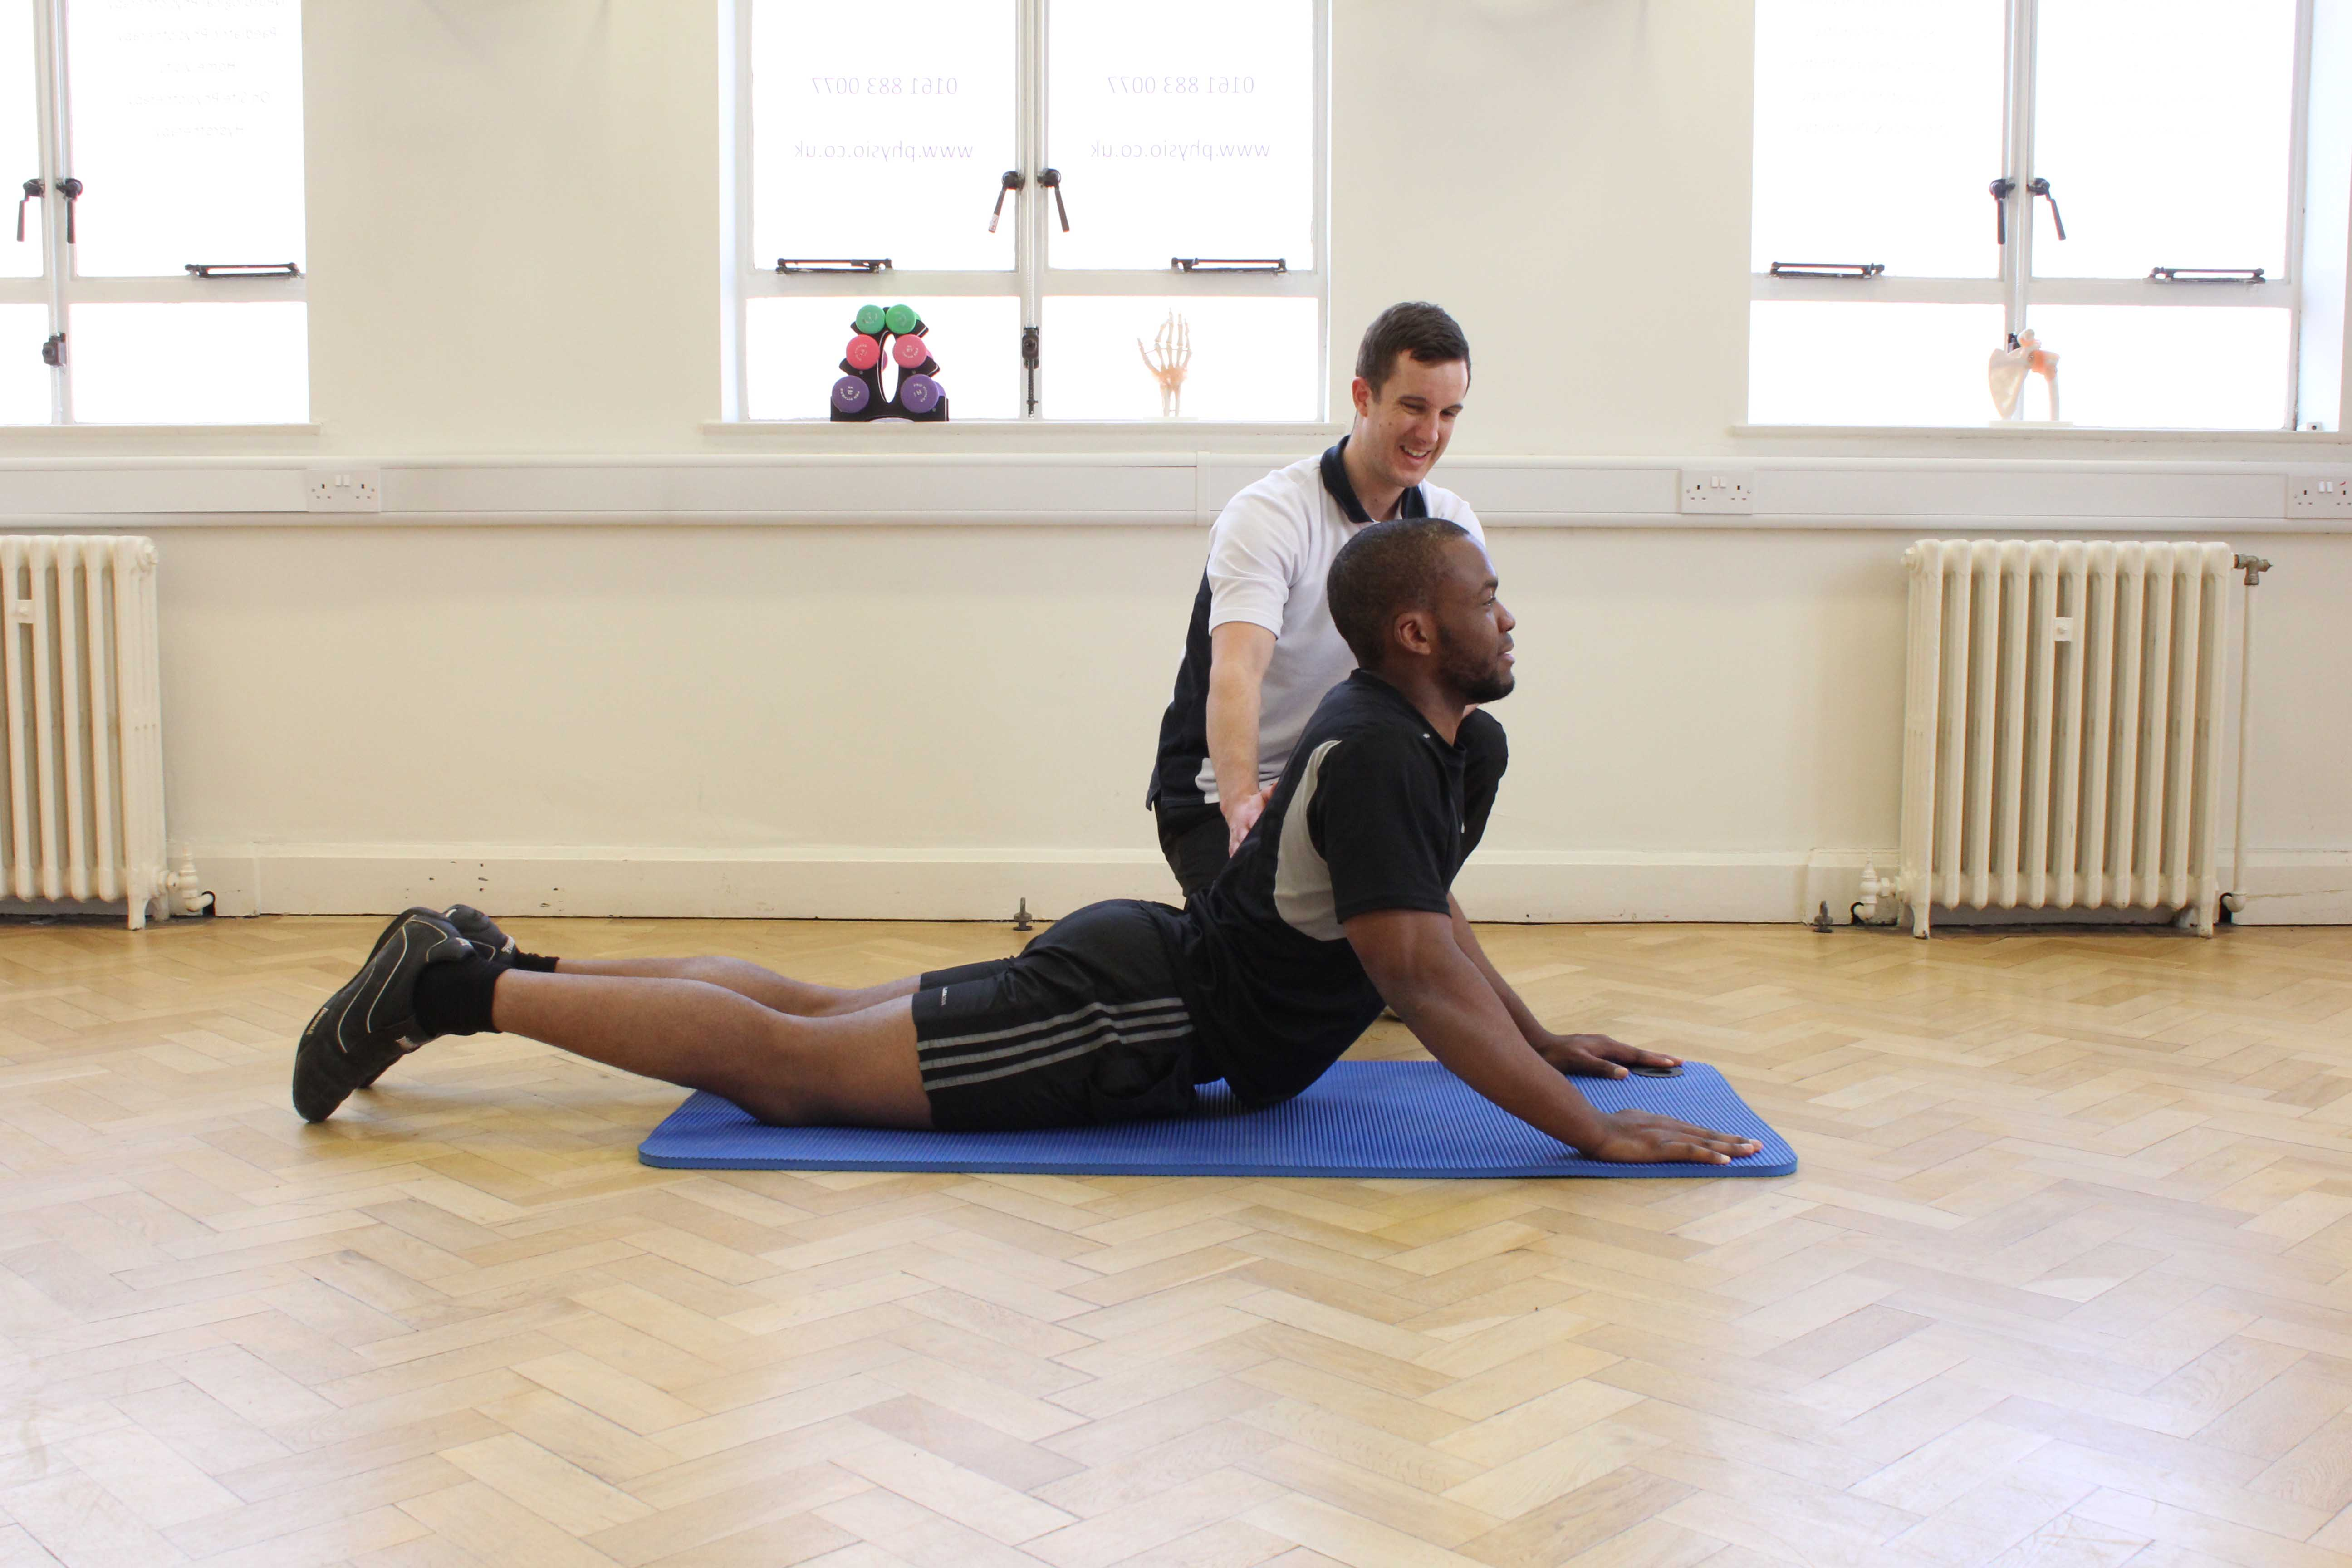 Treatment using the McKenzie concept supervised by experienced physiotherapist